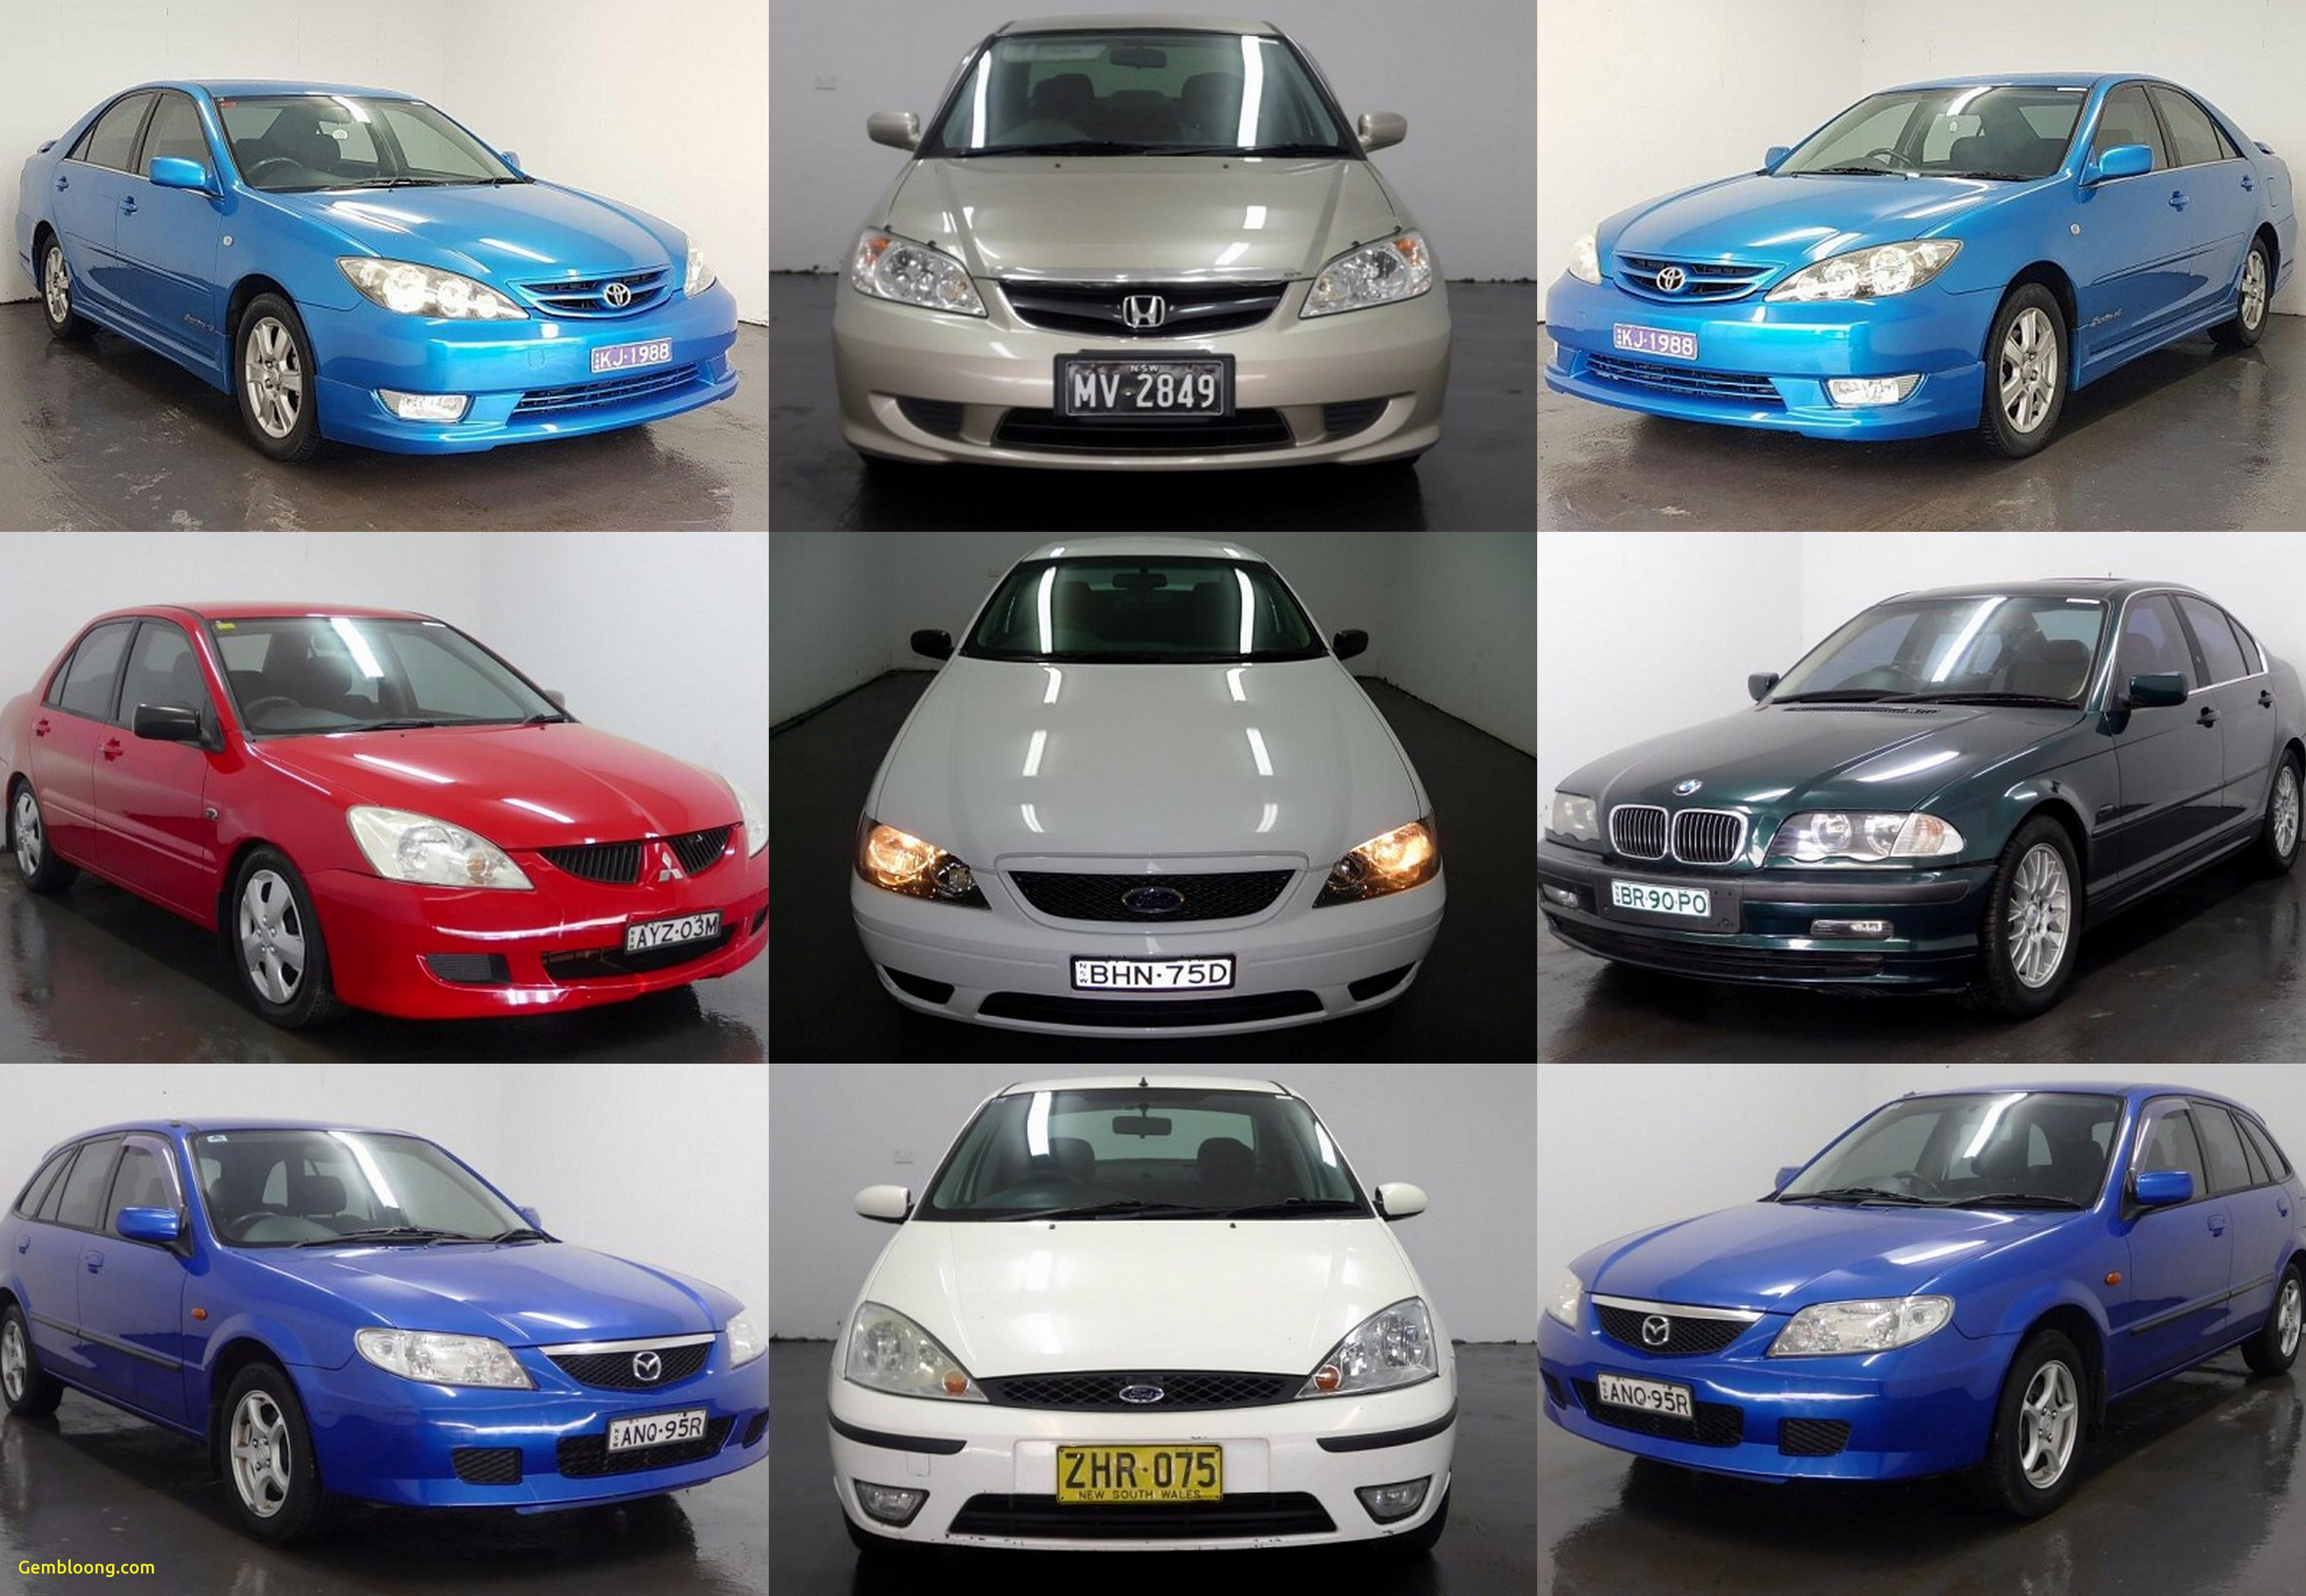 cars for sale near me 6000 unique top 10 bud used cars under $6000 in sydney